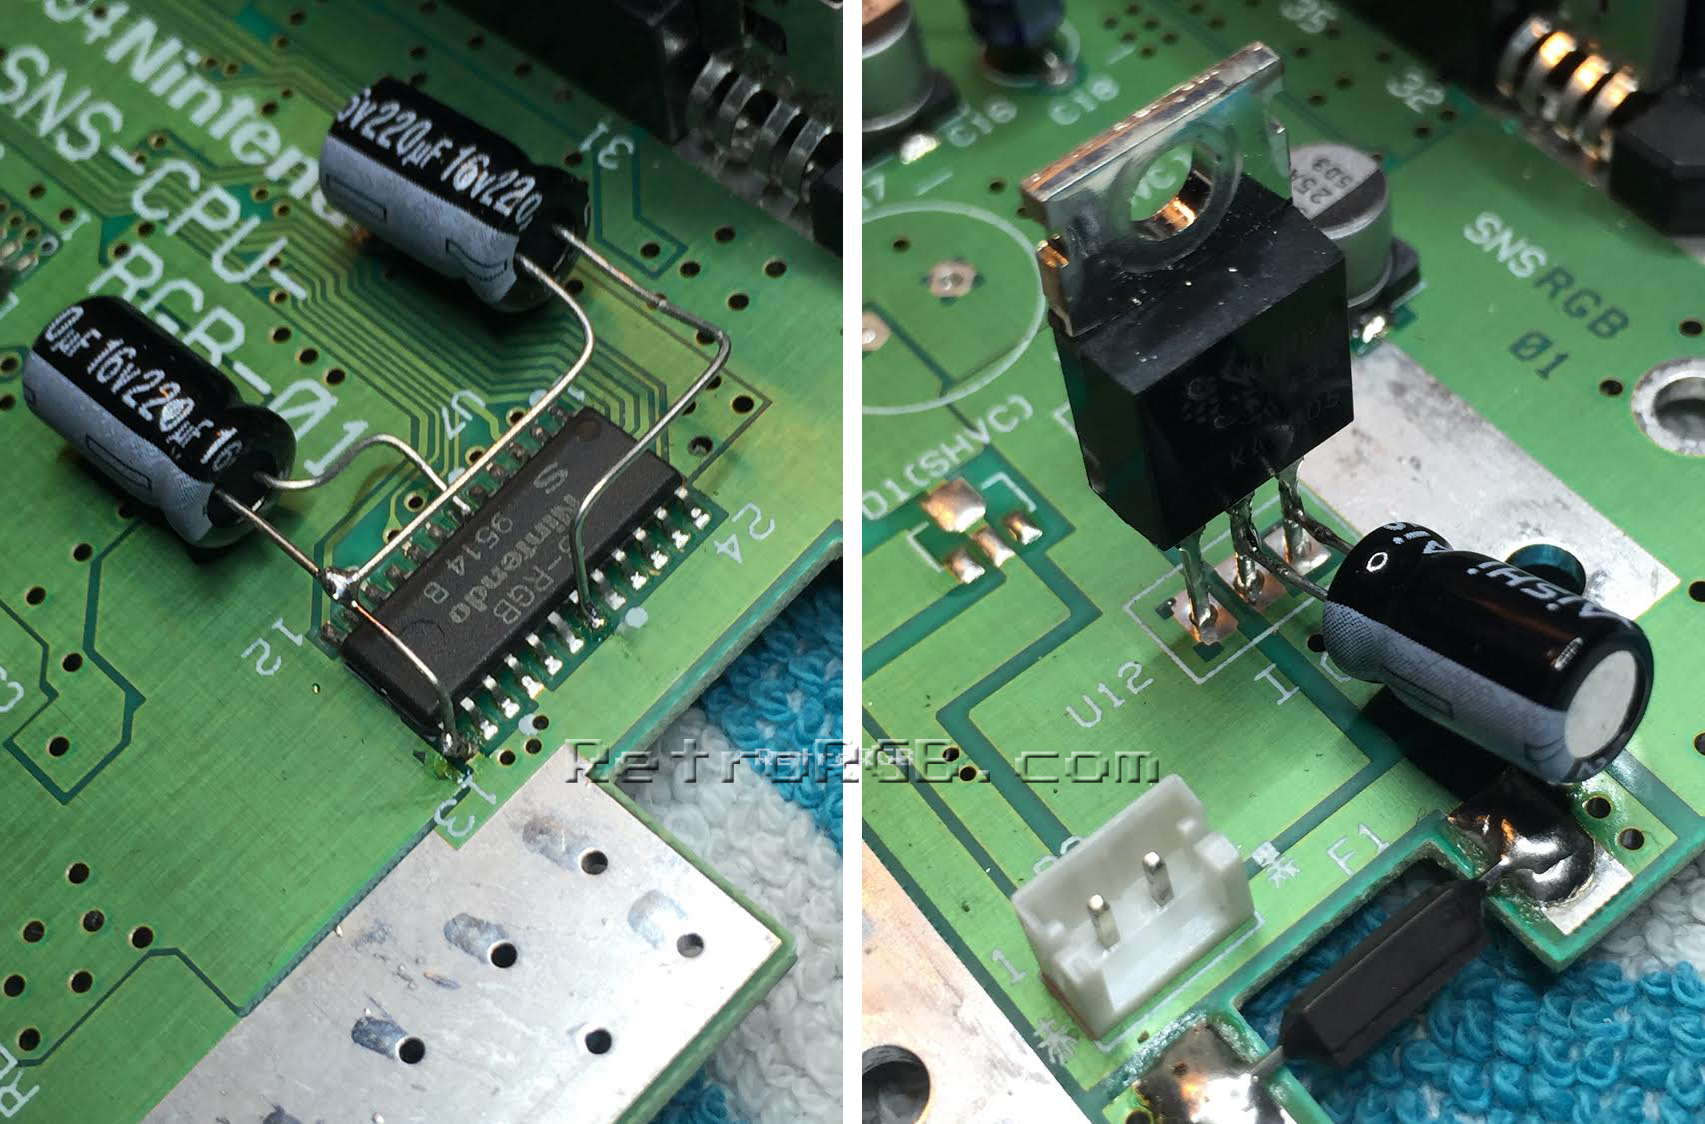 Snes Vertical Line Retrorgb Voltage Regulator 7805 Circuit Alex Arcadetv Suggests A Similar Method That Includes Replacing The Big 2200uf Capacitor Plus Three 220uf One On Output Of And Two